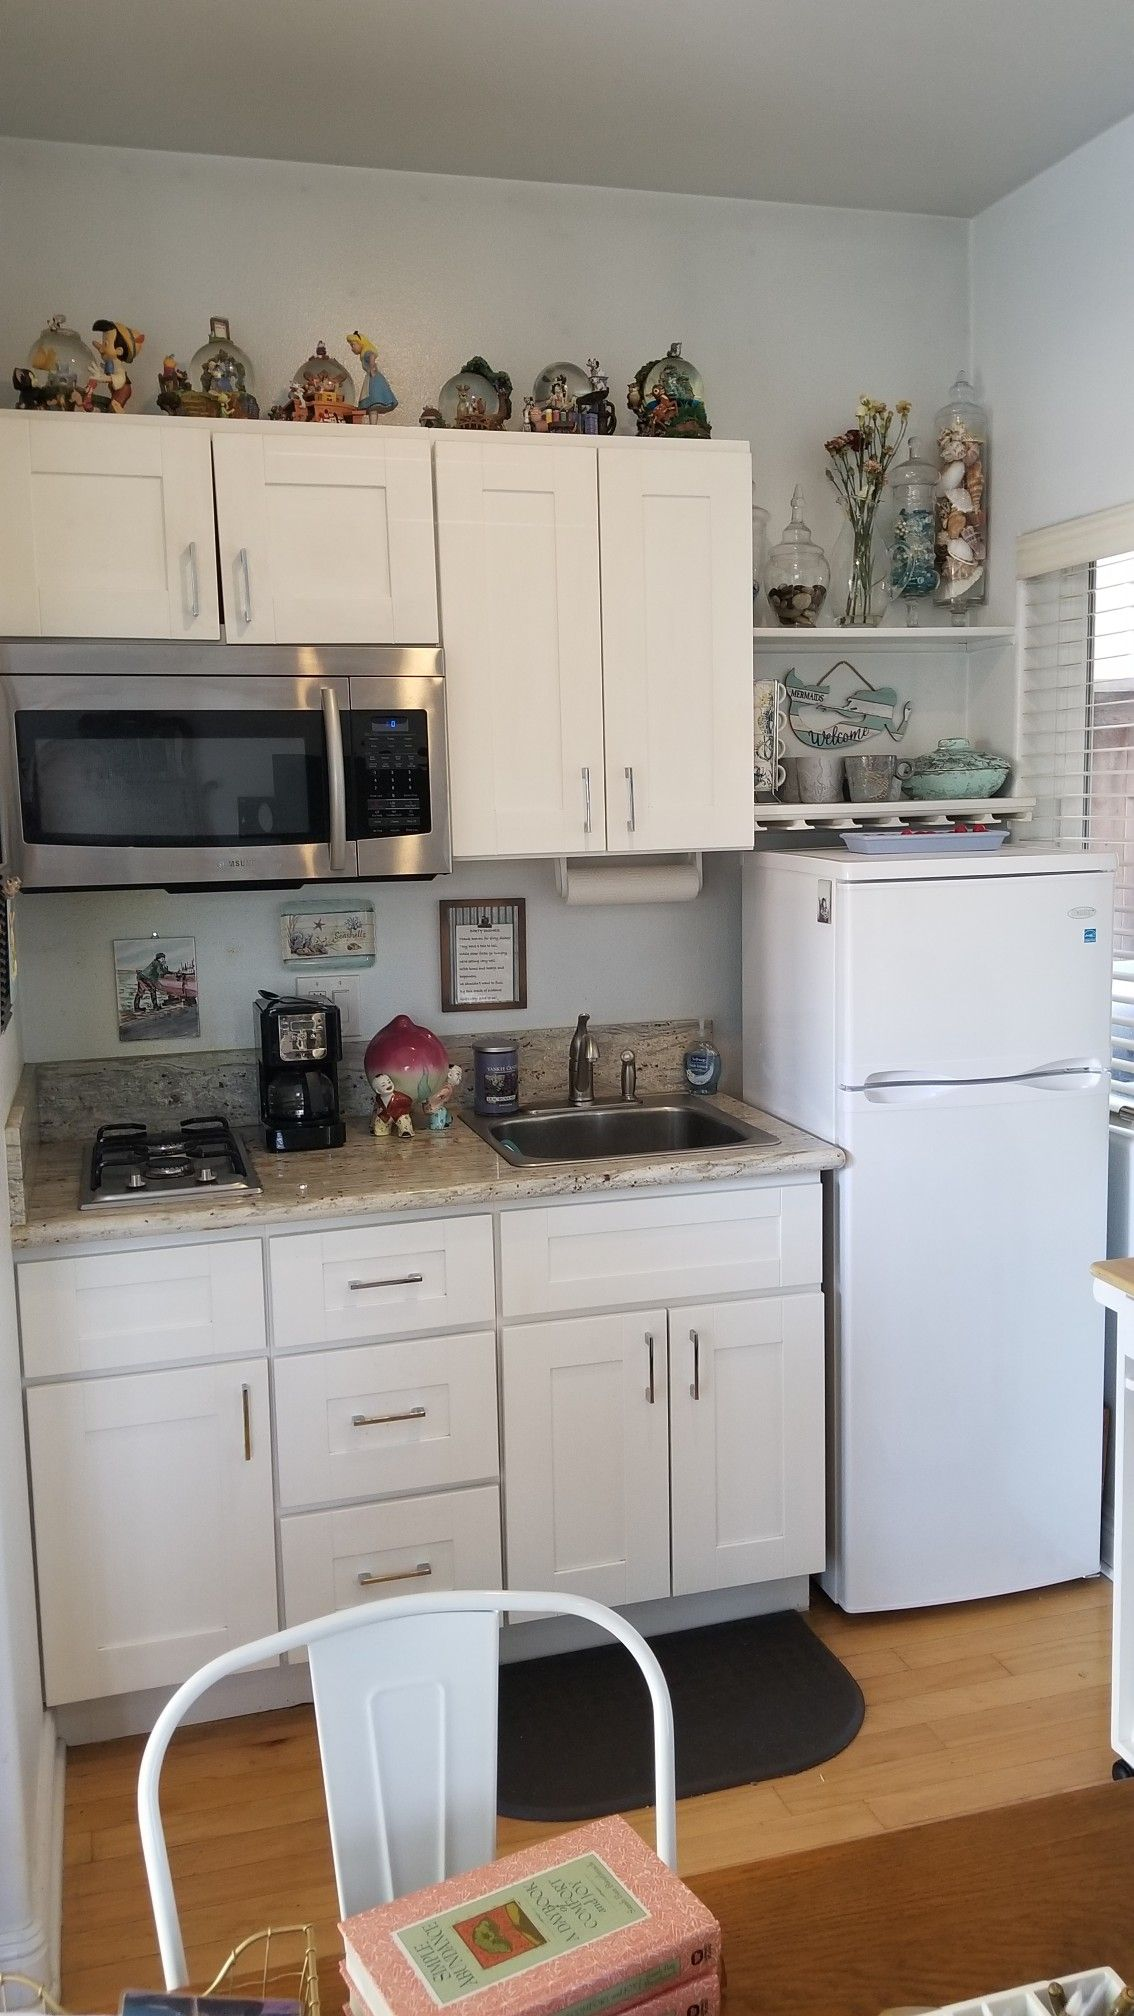 Love My Kitchen Area Cabinet Under Sink Holds Small Appliances